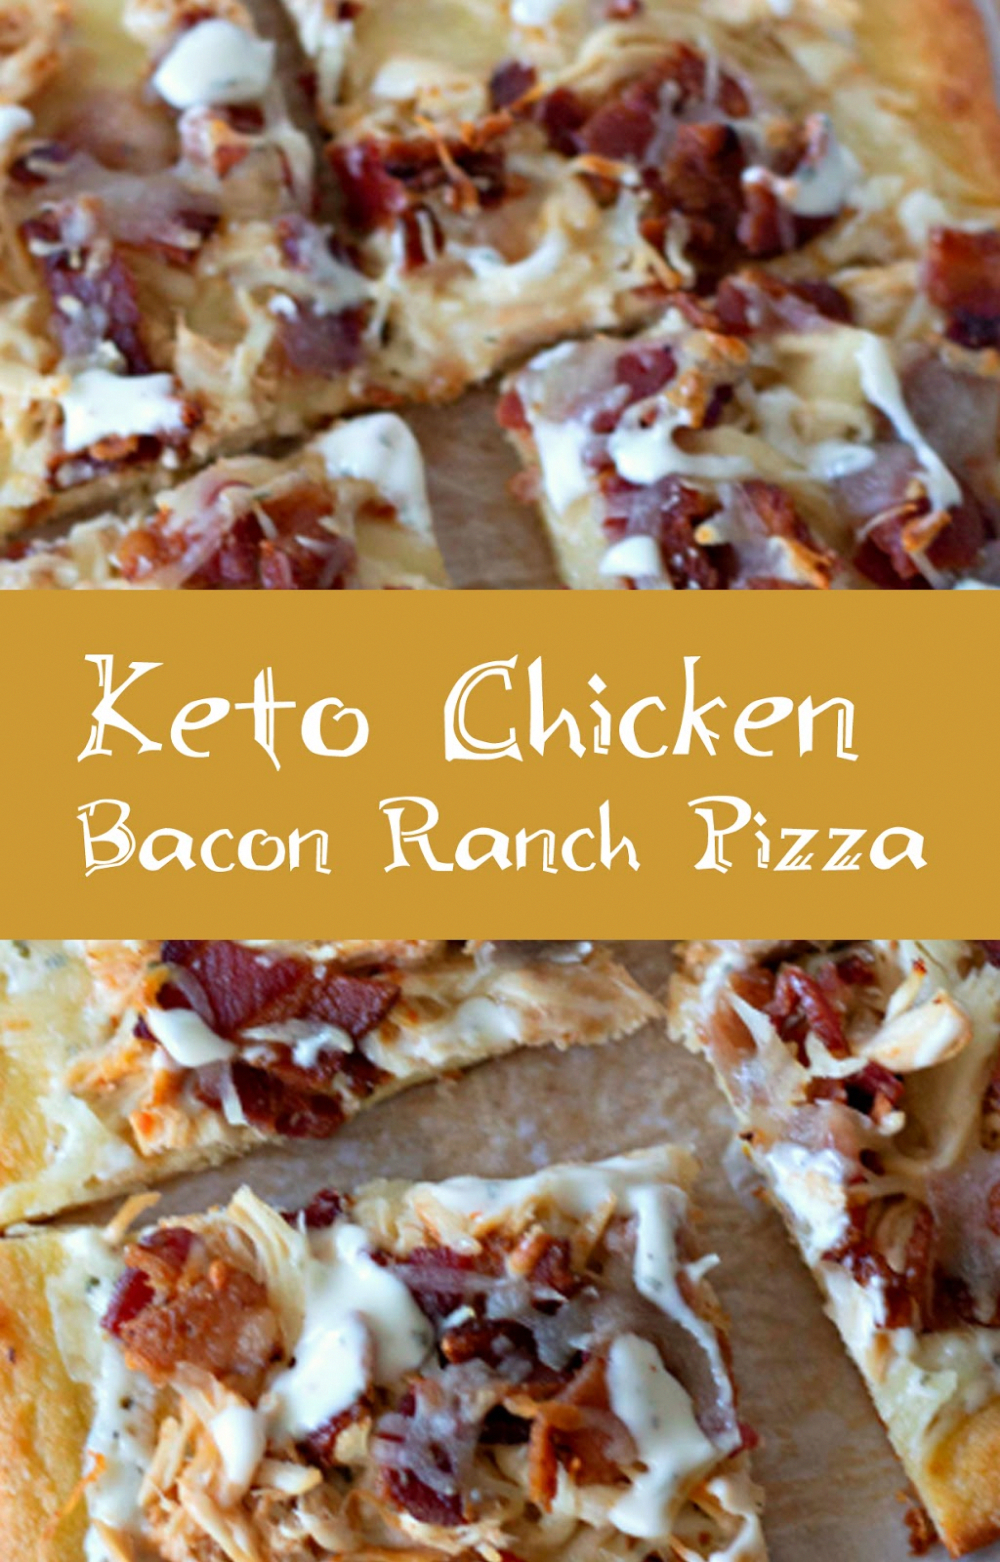 Chicken Bacon Ranch Pizza Recipe- ketogenic diet low carb pizza recipe. Soo good!! Easy keto dinner